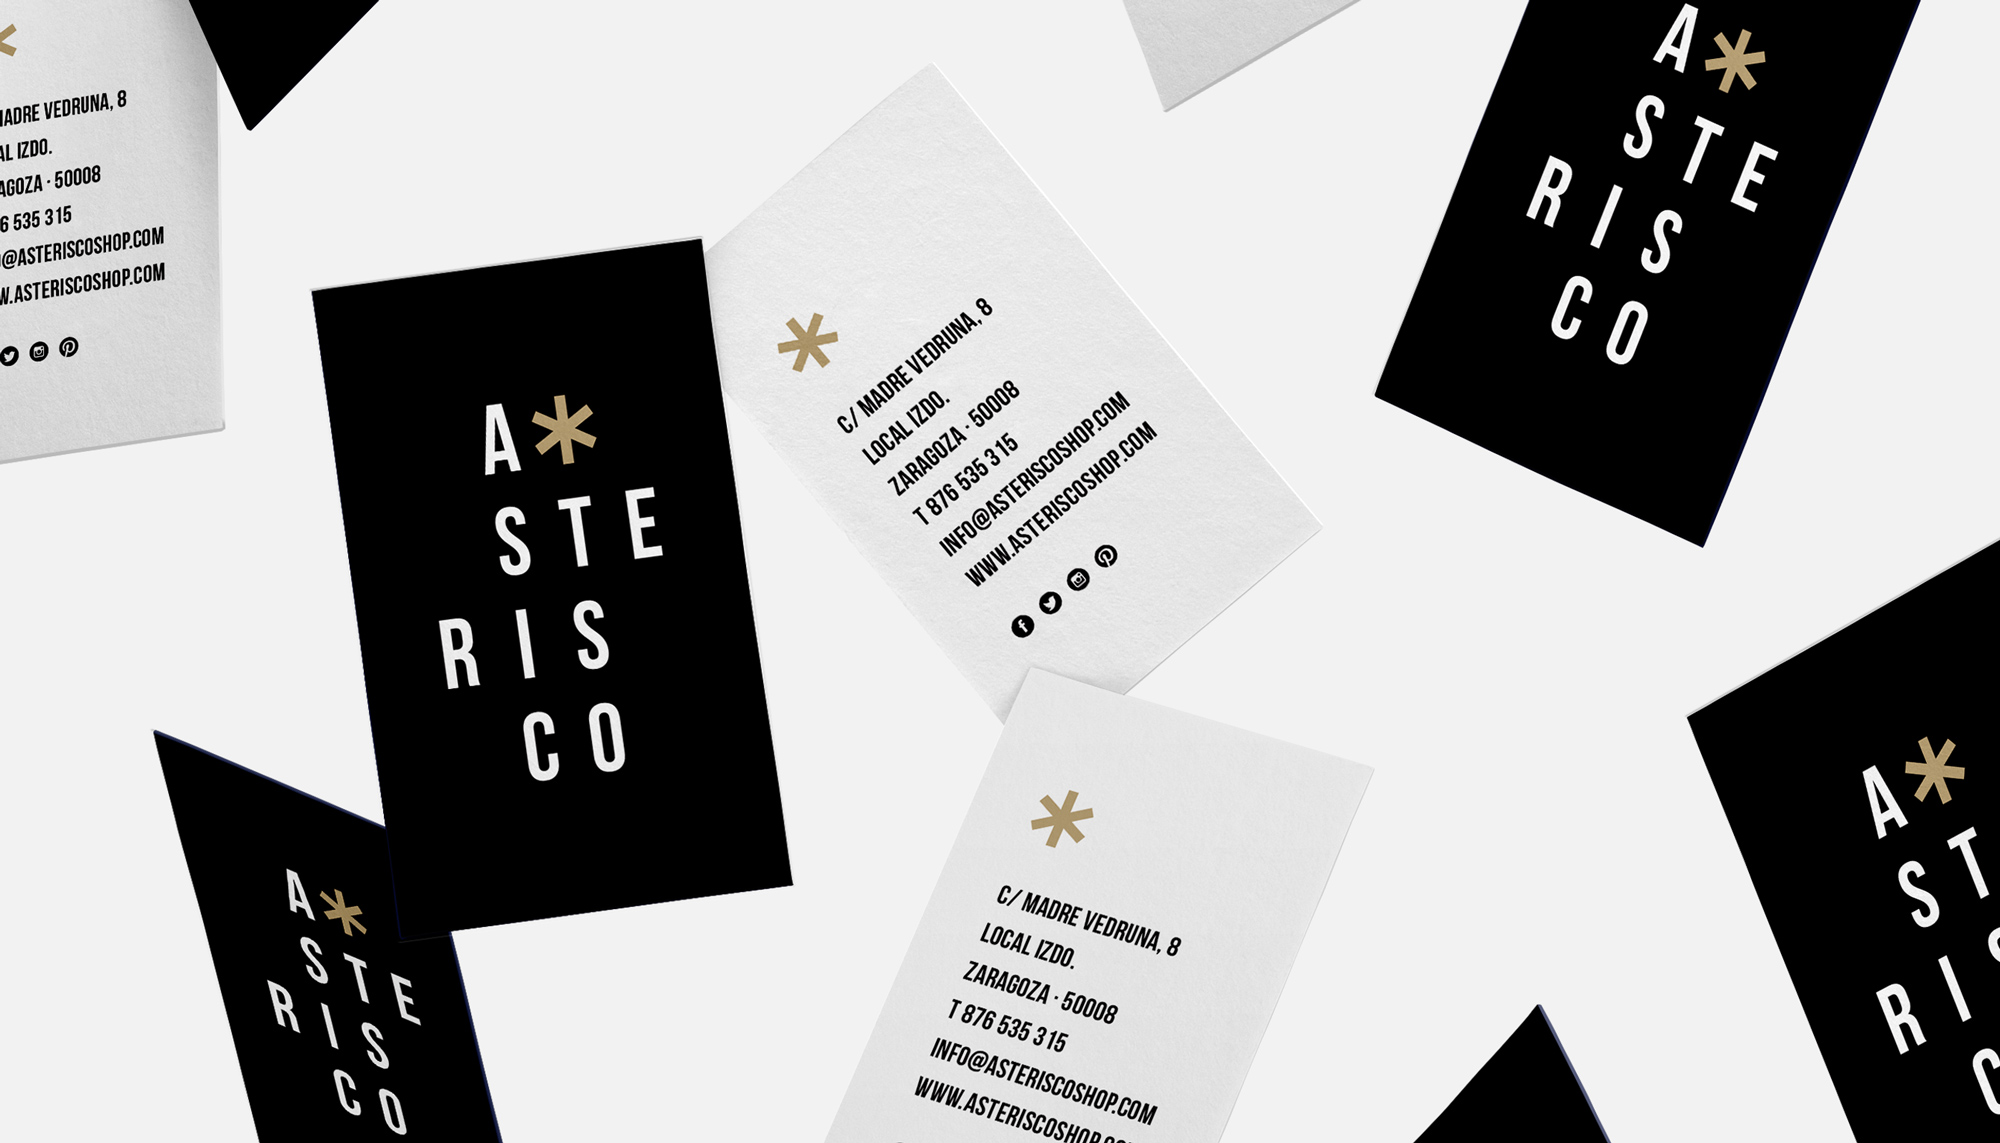 Identidad Corporativa Asterisco Shop